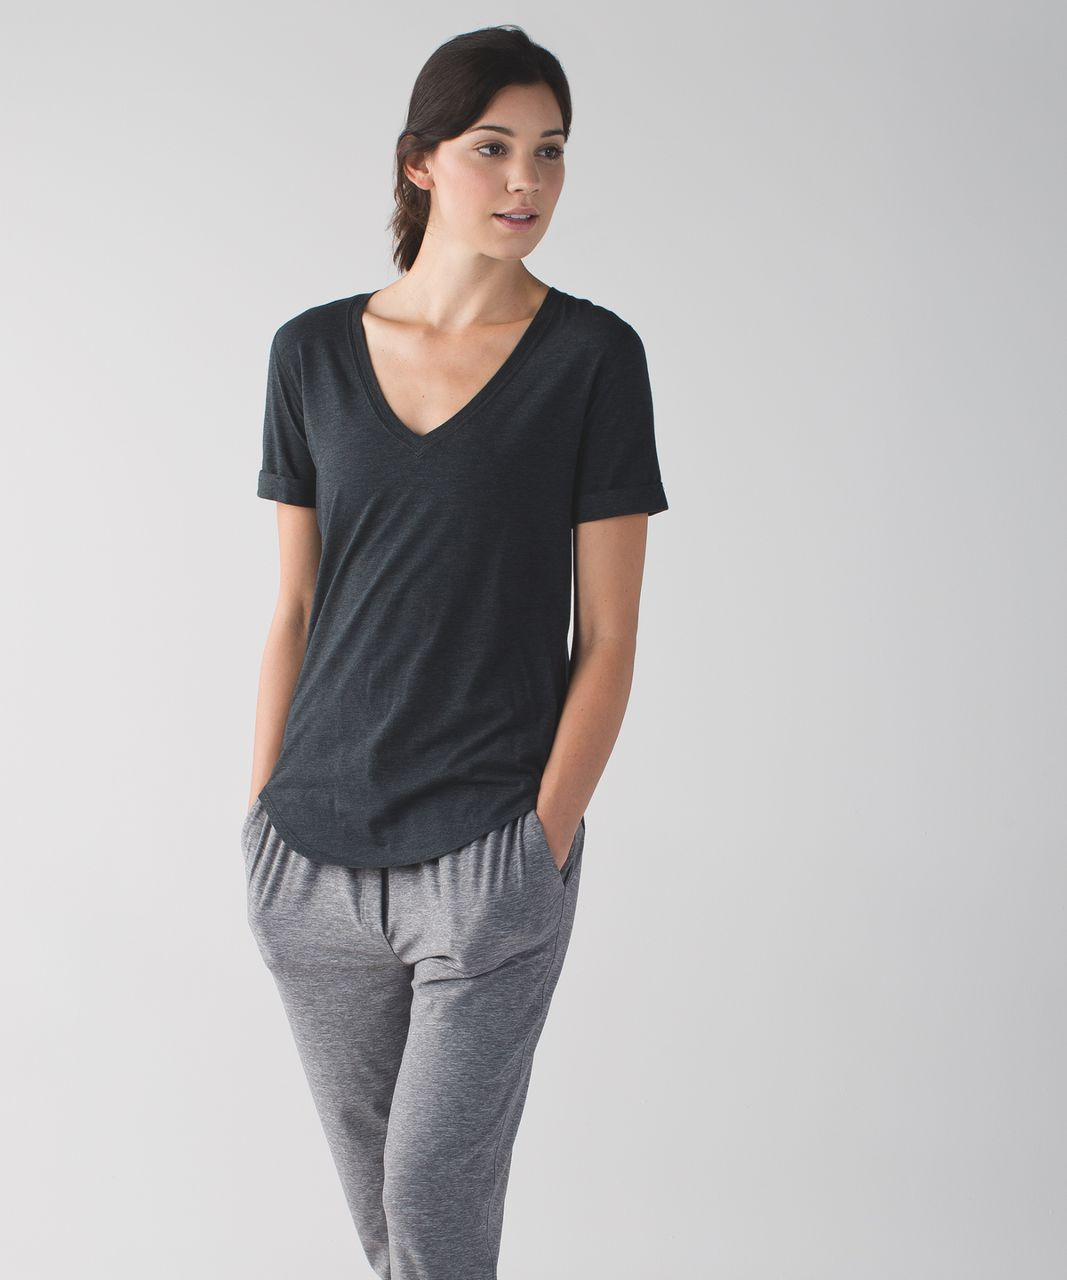 Lululemon Love Tee II - Heathered Black